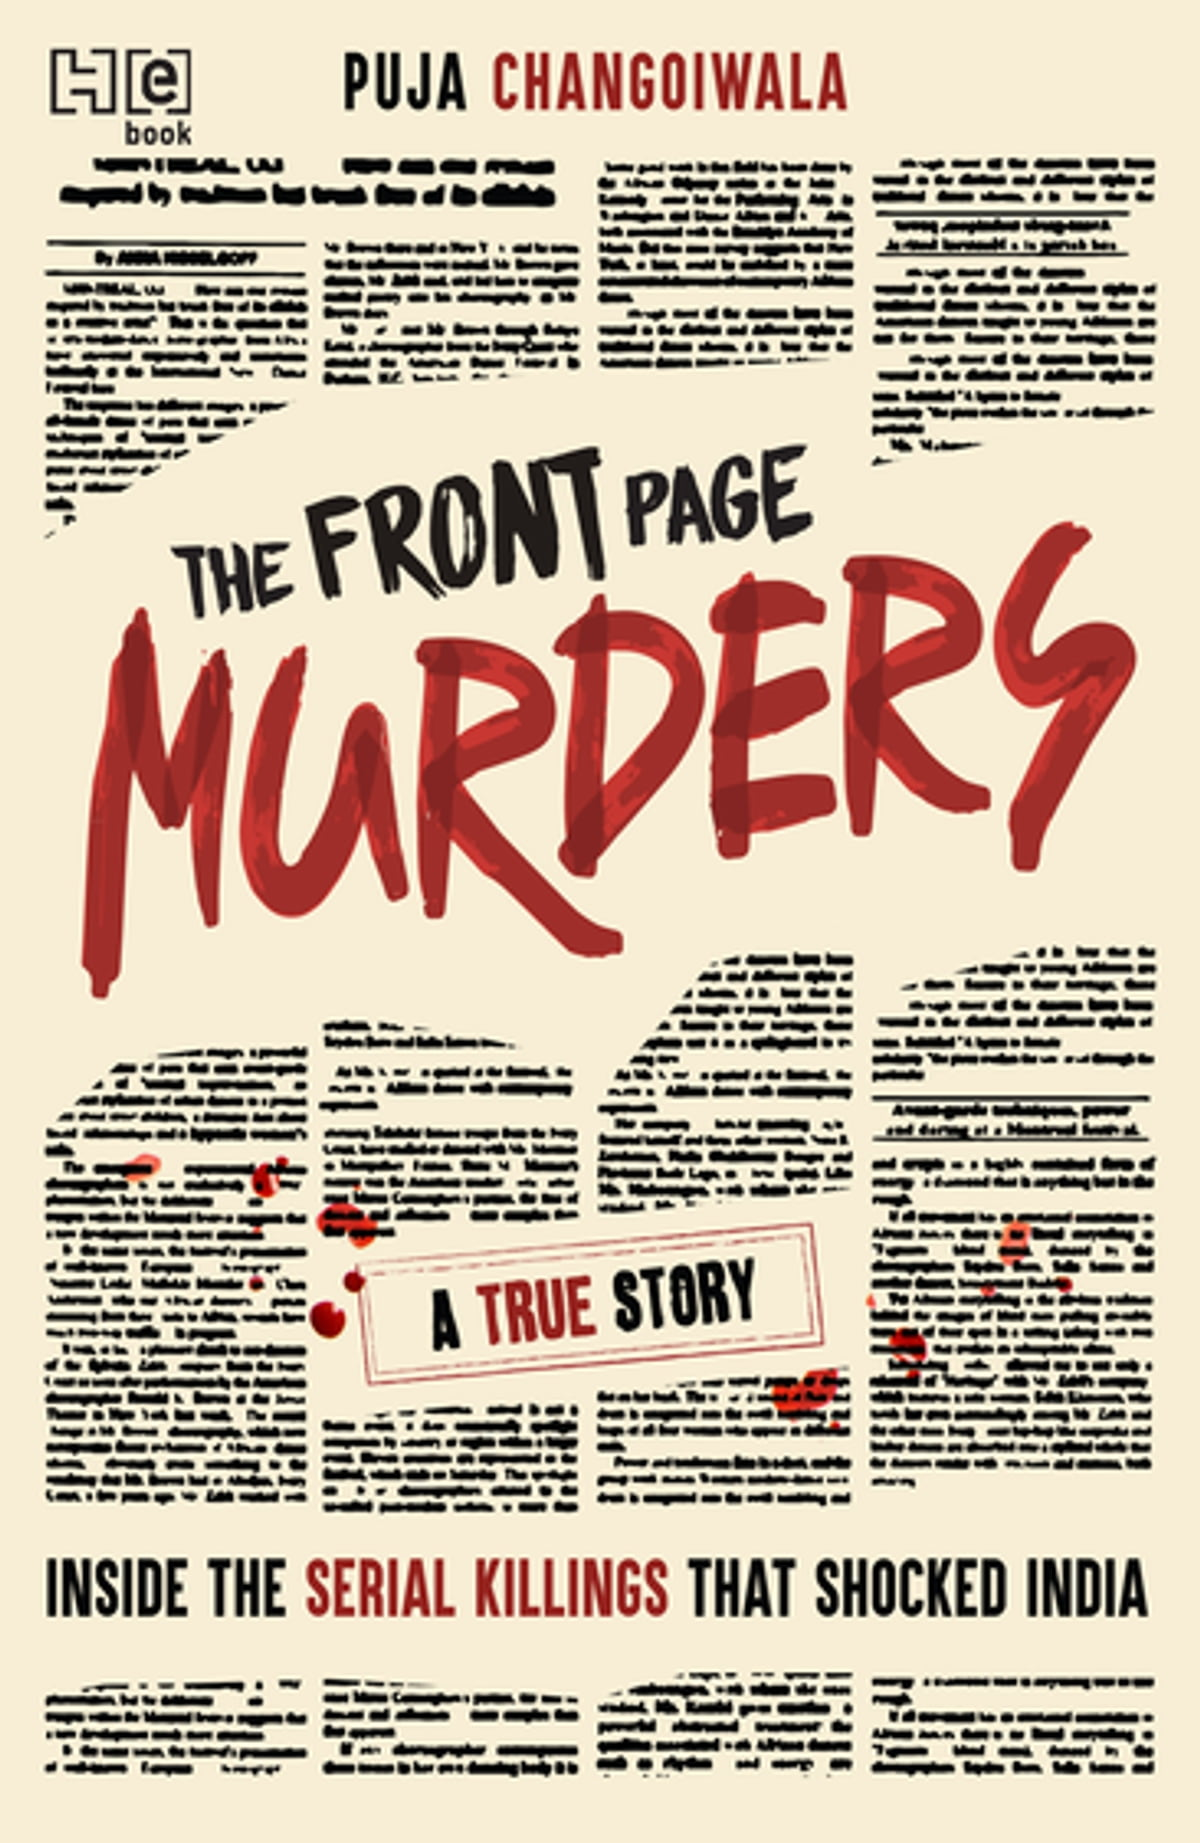 The Front Page Murders  Inside The Serial Killings That Shocked India Ebook  By Puja Changoiwala